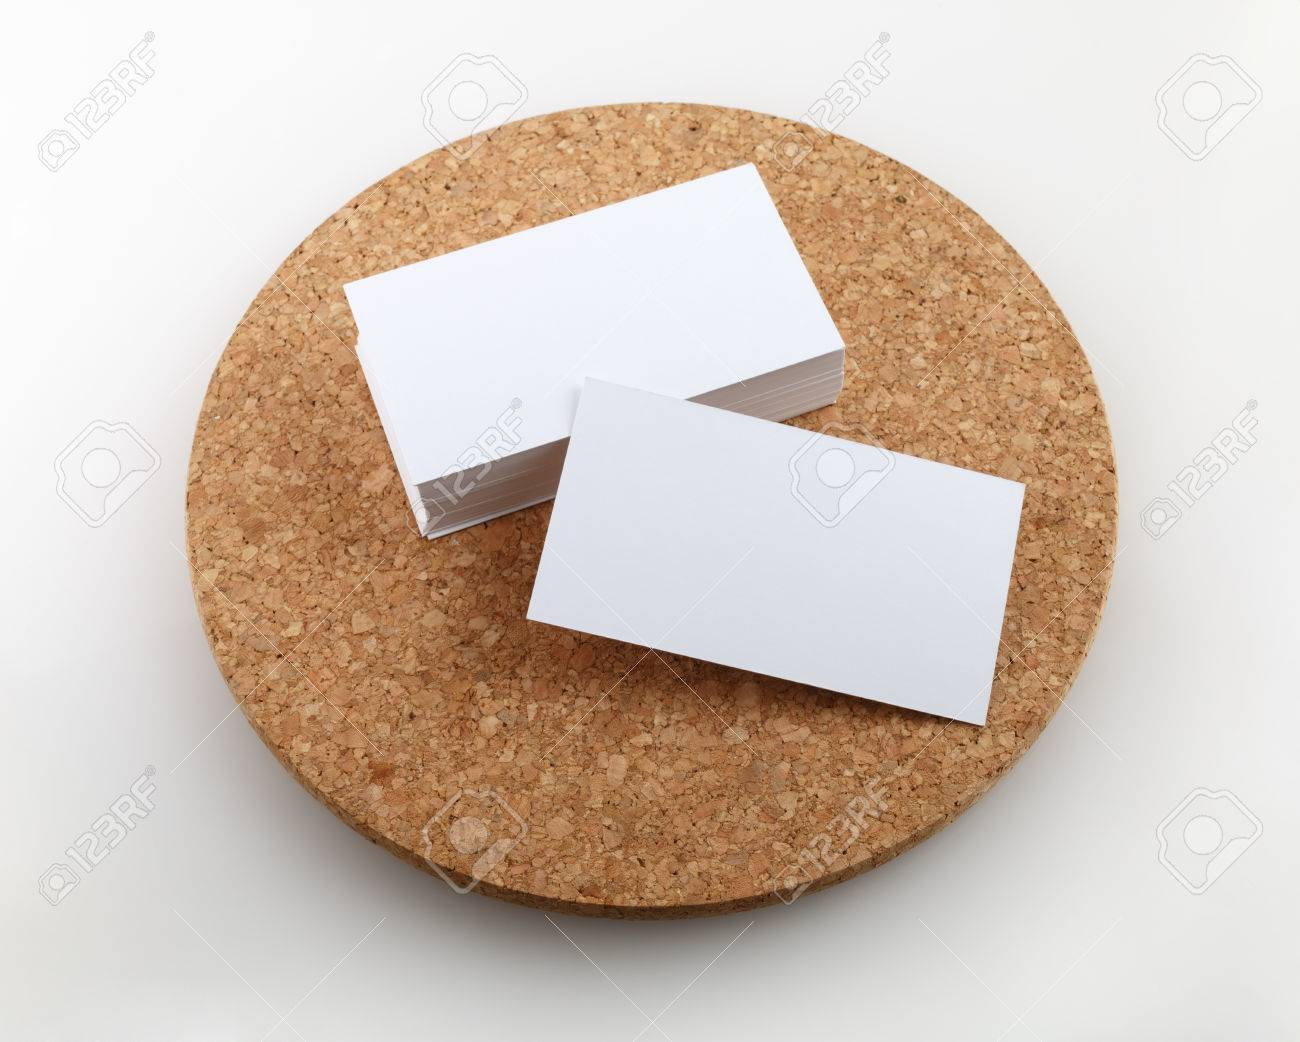 Blank business cards on a round cork base clipping path stock photo blank business cards on a round cork base clipping path stock photo 35596790 colourmoves